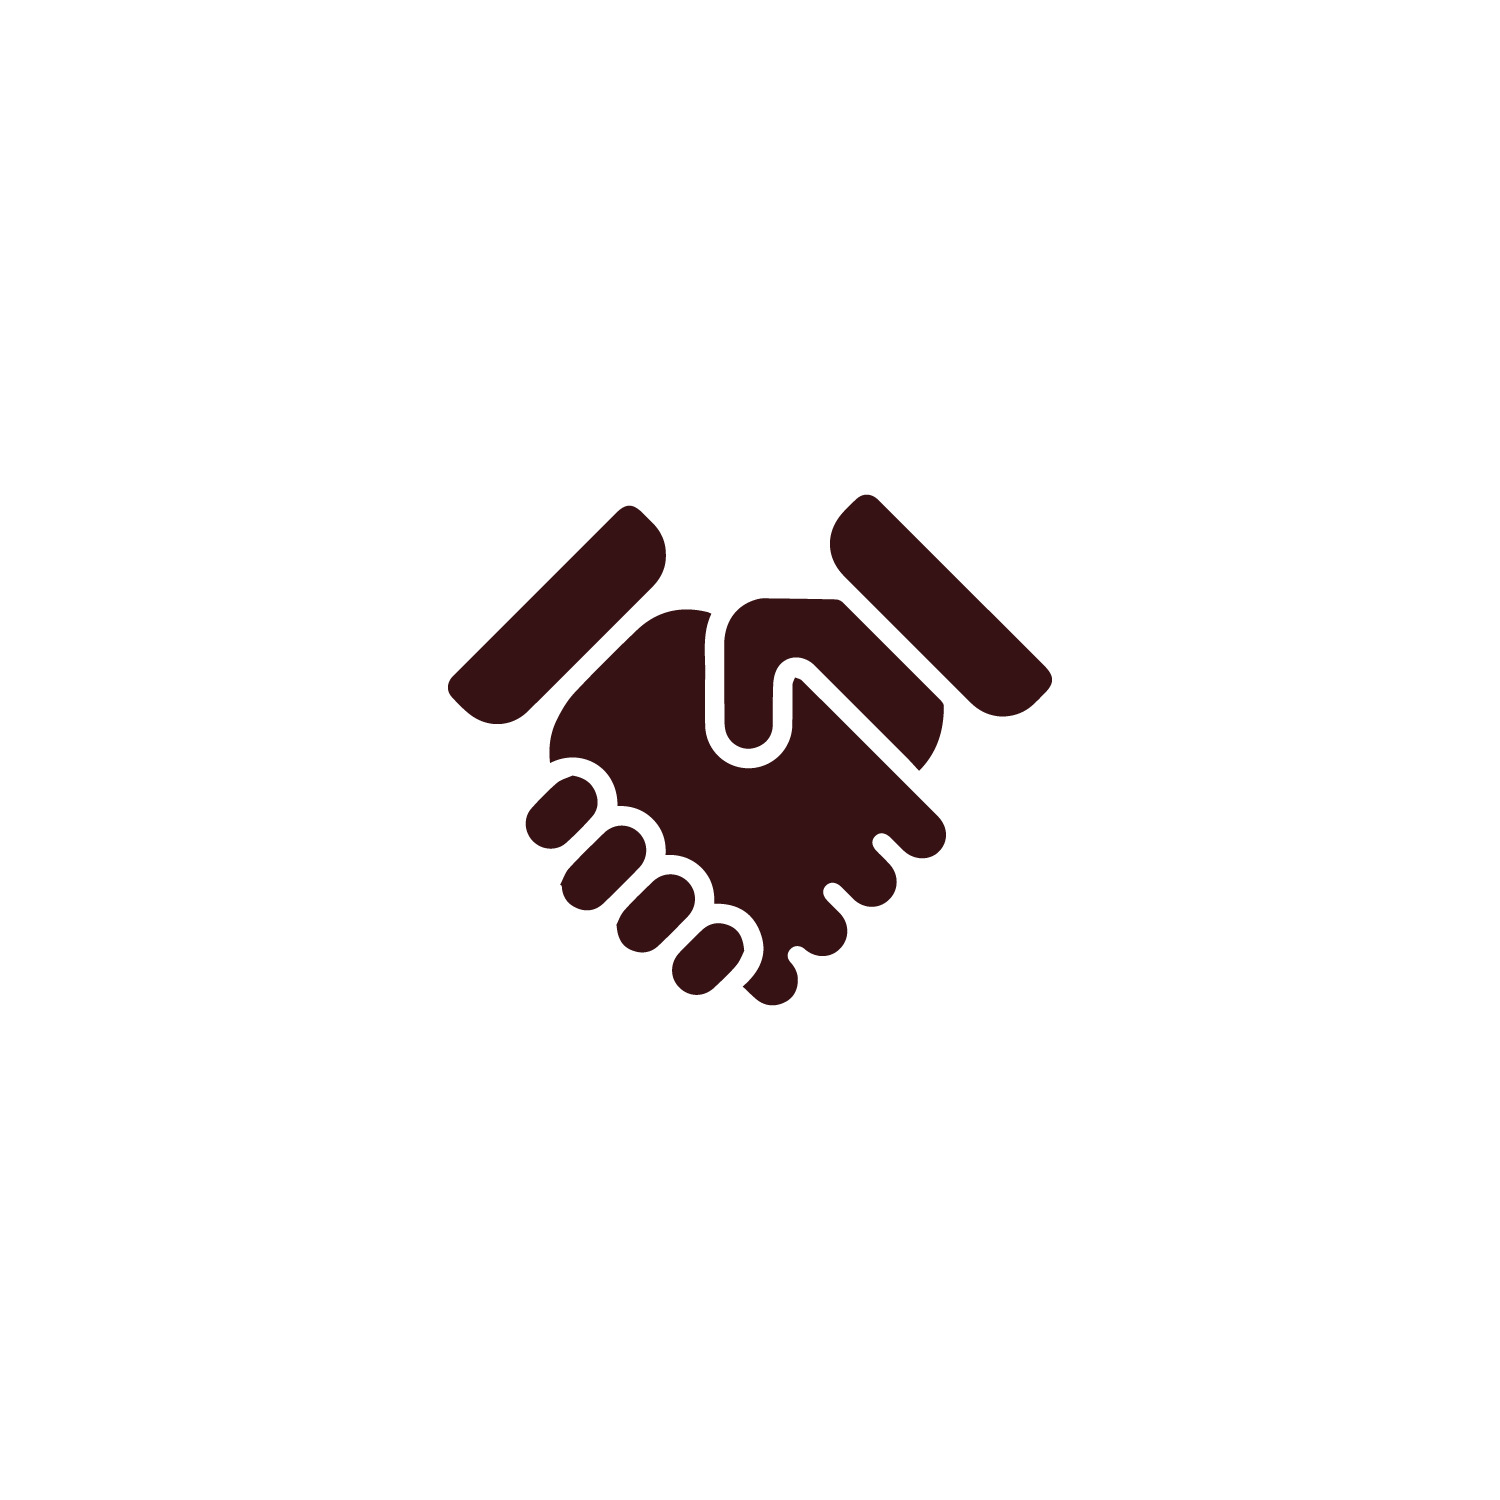 """Handshake"" icon from thenounproject.com"